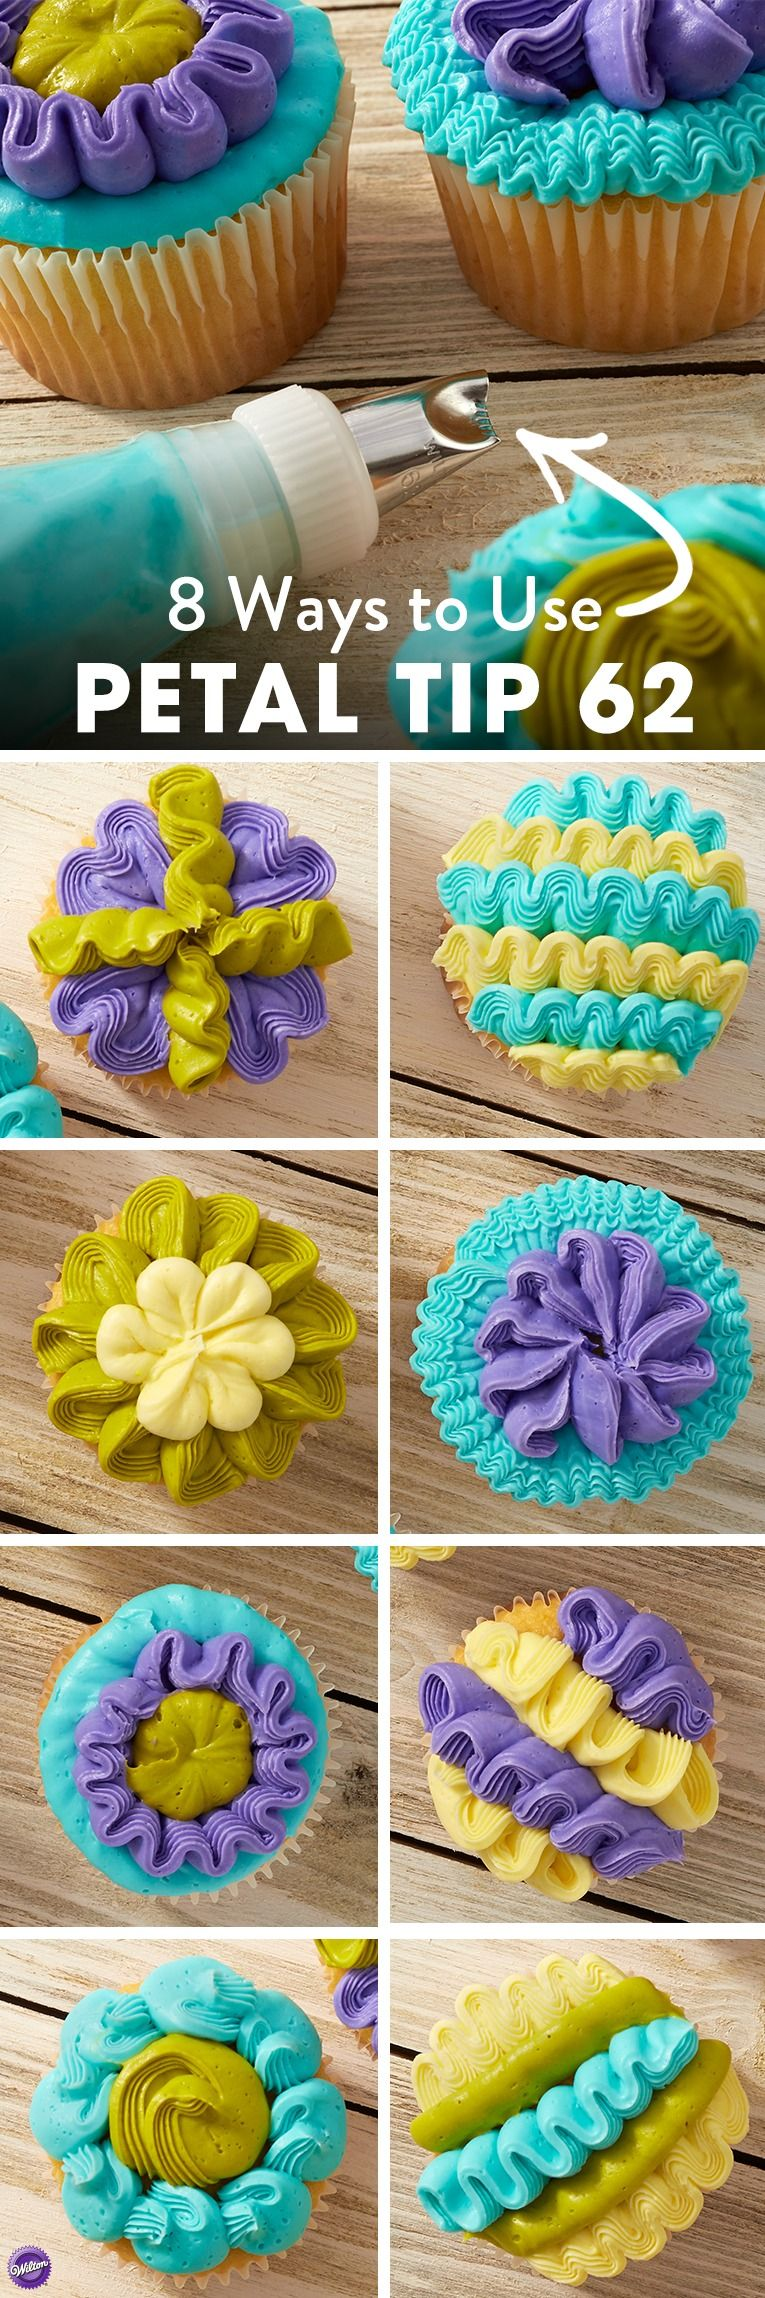 How to Decorate Cupcakes with Petal tip 62 - Often used to create textured petals, decorating tip 62 features a smooth side and a serrated side, as well as a wide end and a narrow end to add petal dimension. But petals aren't all this little tip can do! From lines to zig-zags, rosettes to ruffles, the petal decorating tip 62 can create fun and wild designs, especially when combined with fun color combinations!